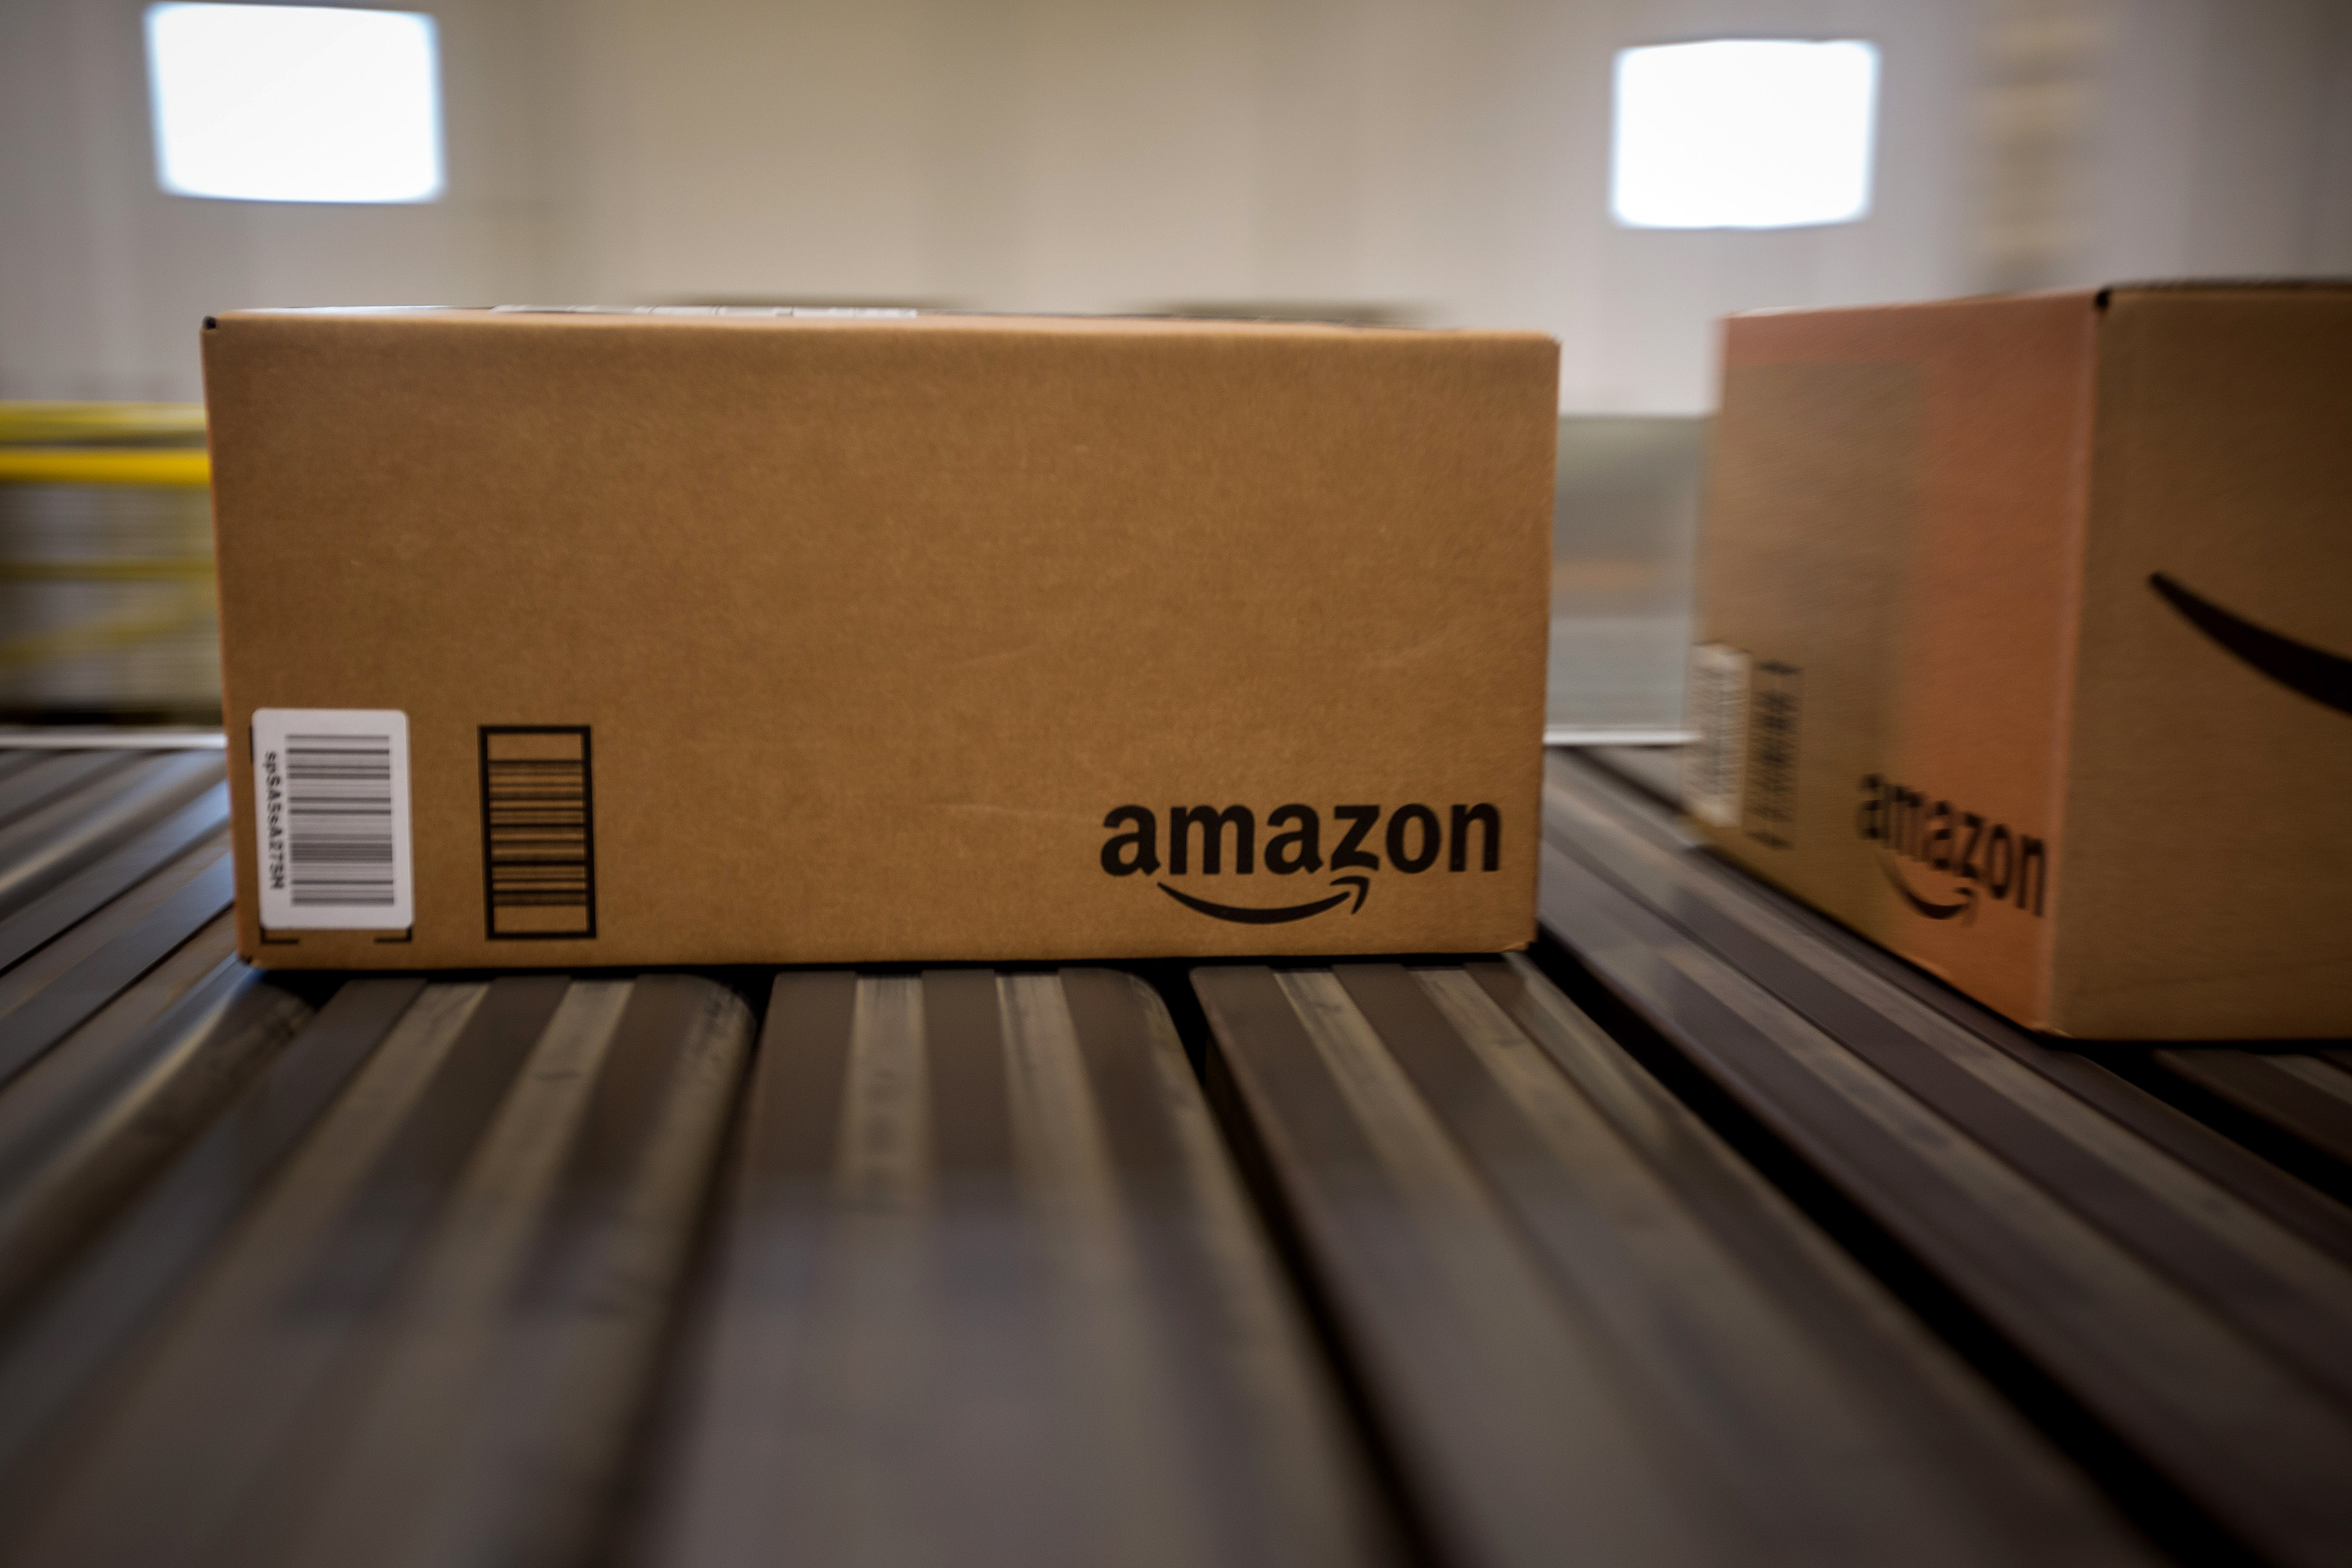 Boxes move along a conveyor belt at the Amazon.com Inc. fulfillment center on Cyber Monday in Robbinsville, New Jersey, U.S., on Monday, Nov. 30, 2015.